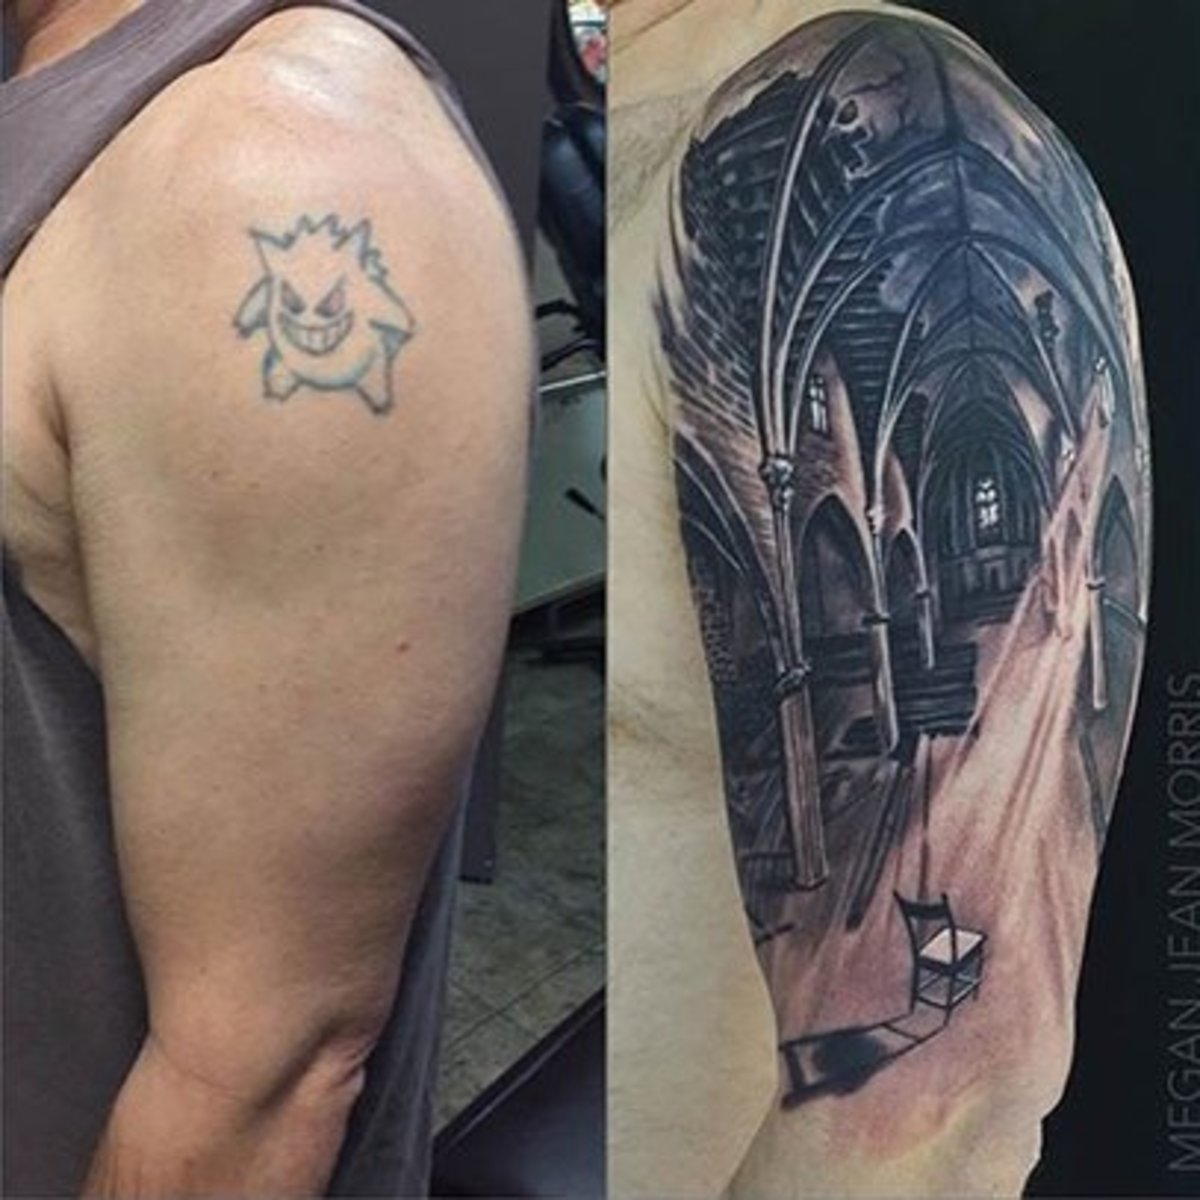 Another Cover Up From Today Thanks Tattoo Fixers: Tattoo Ideas, Artists